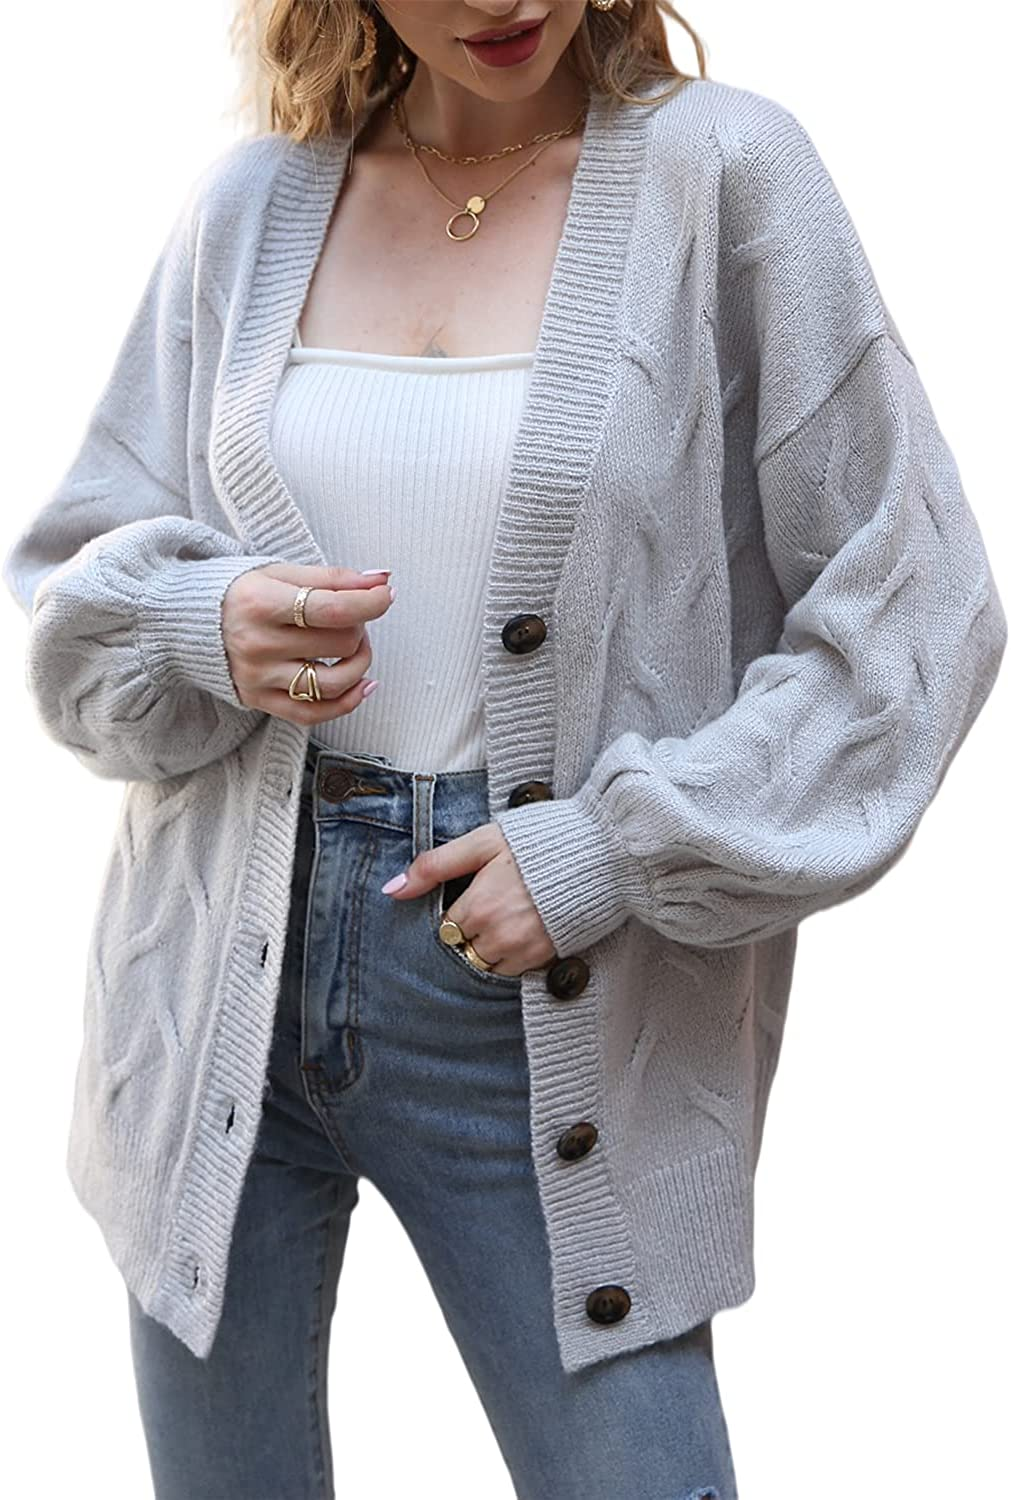 Miessial Women's Lantern Sleeve Cable Knit Cardigans Button Down Loose Fit Kimono Cardigan Sweaters